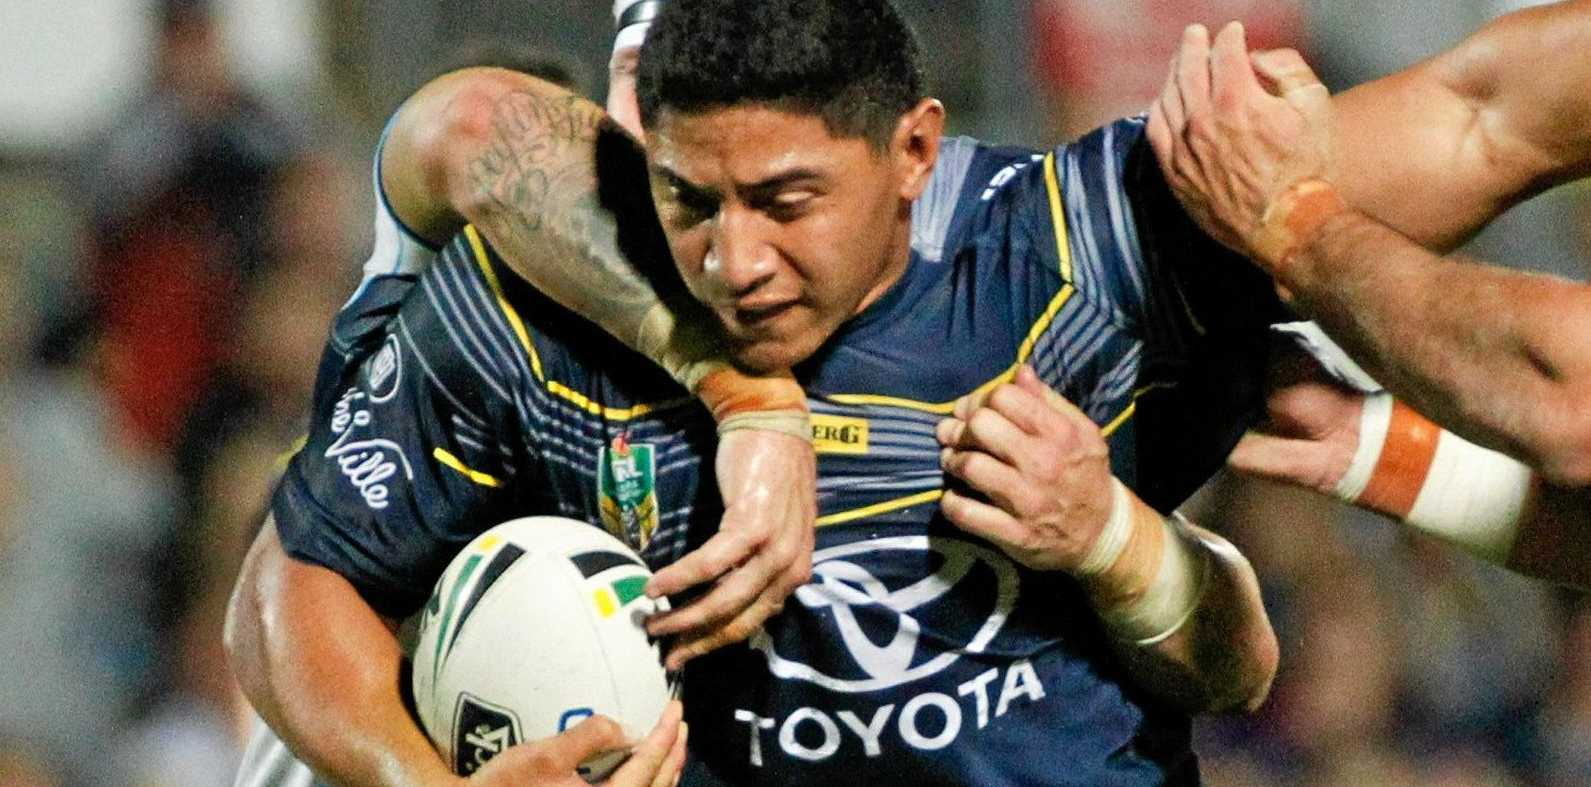 Cowboys forward Jason Taumalolo is tackled in a game against the Titans this year.